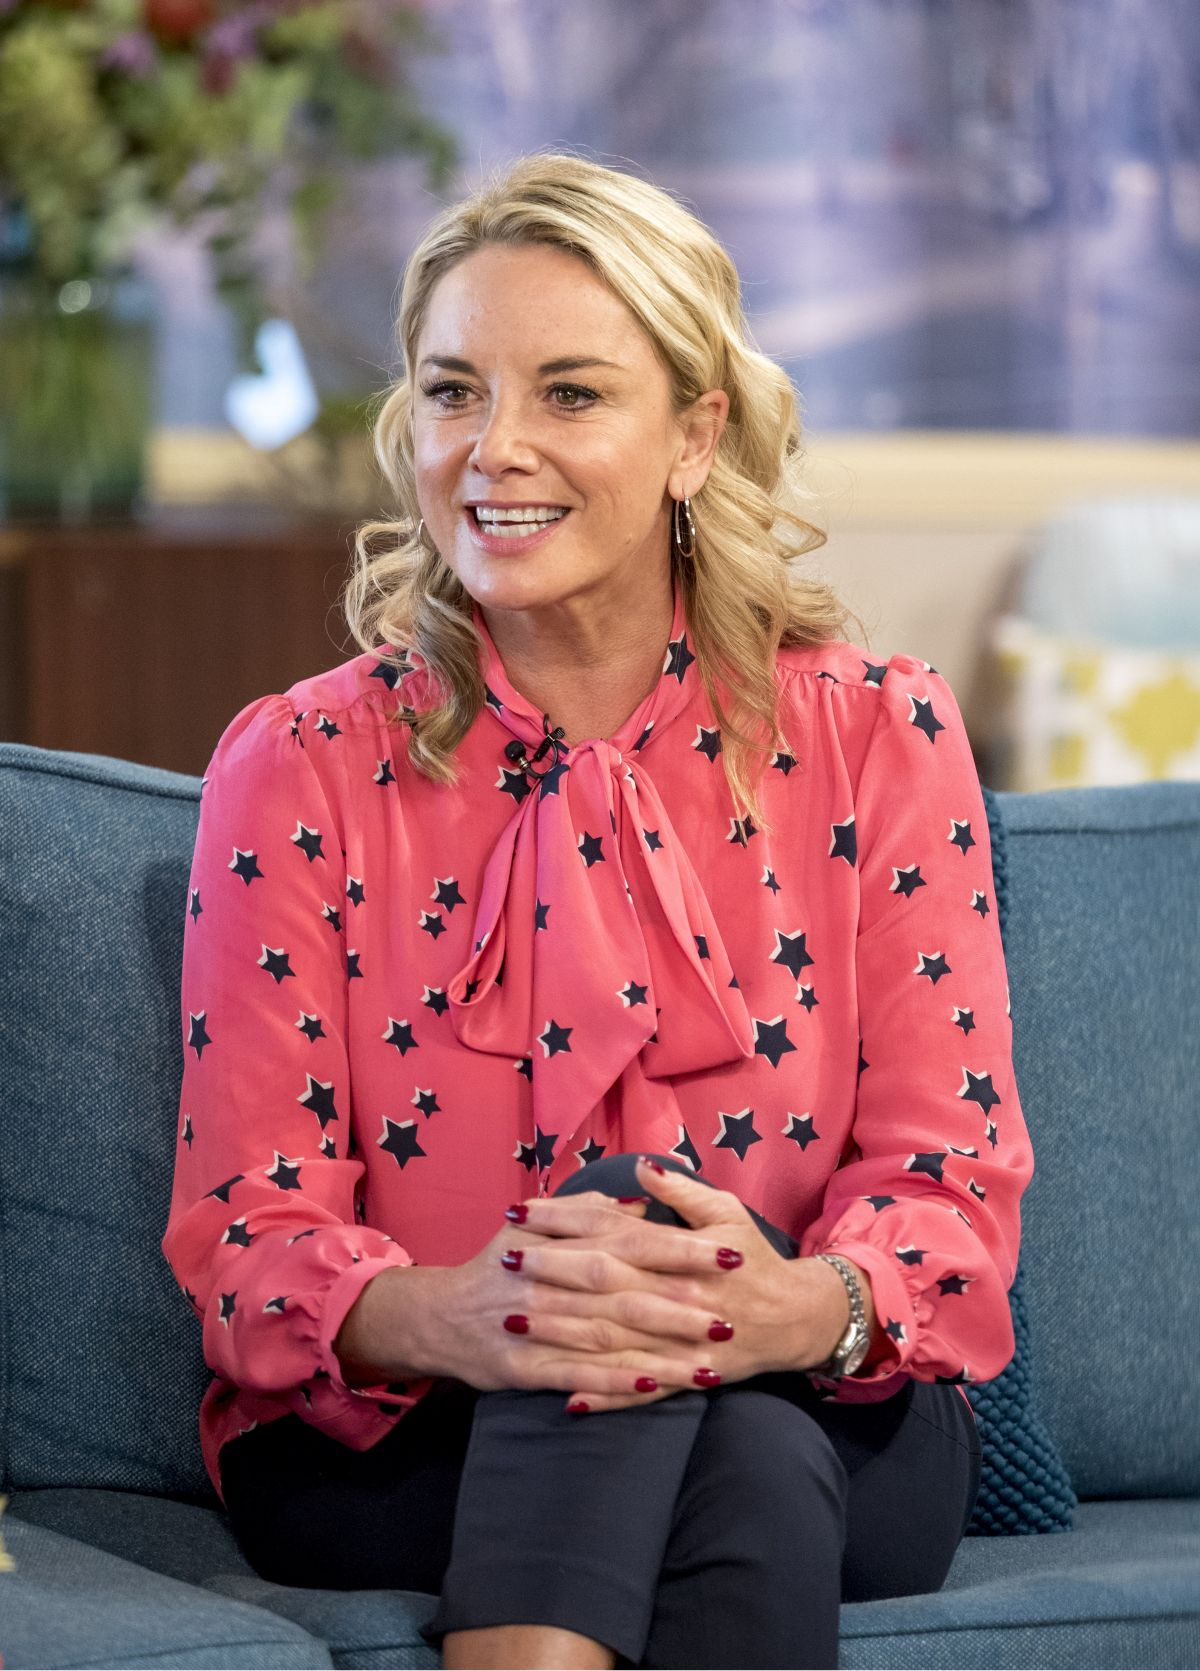 tamzin outhwaite - photo #45